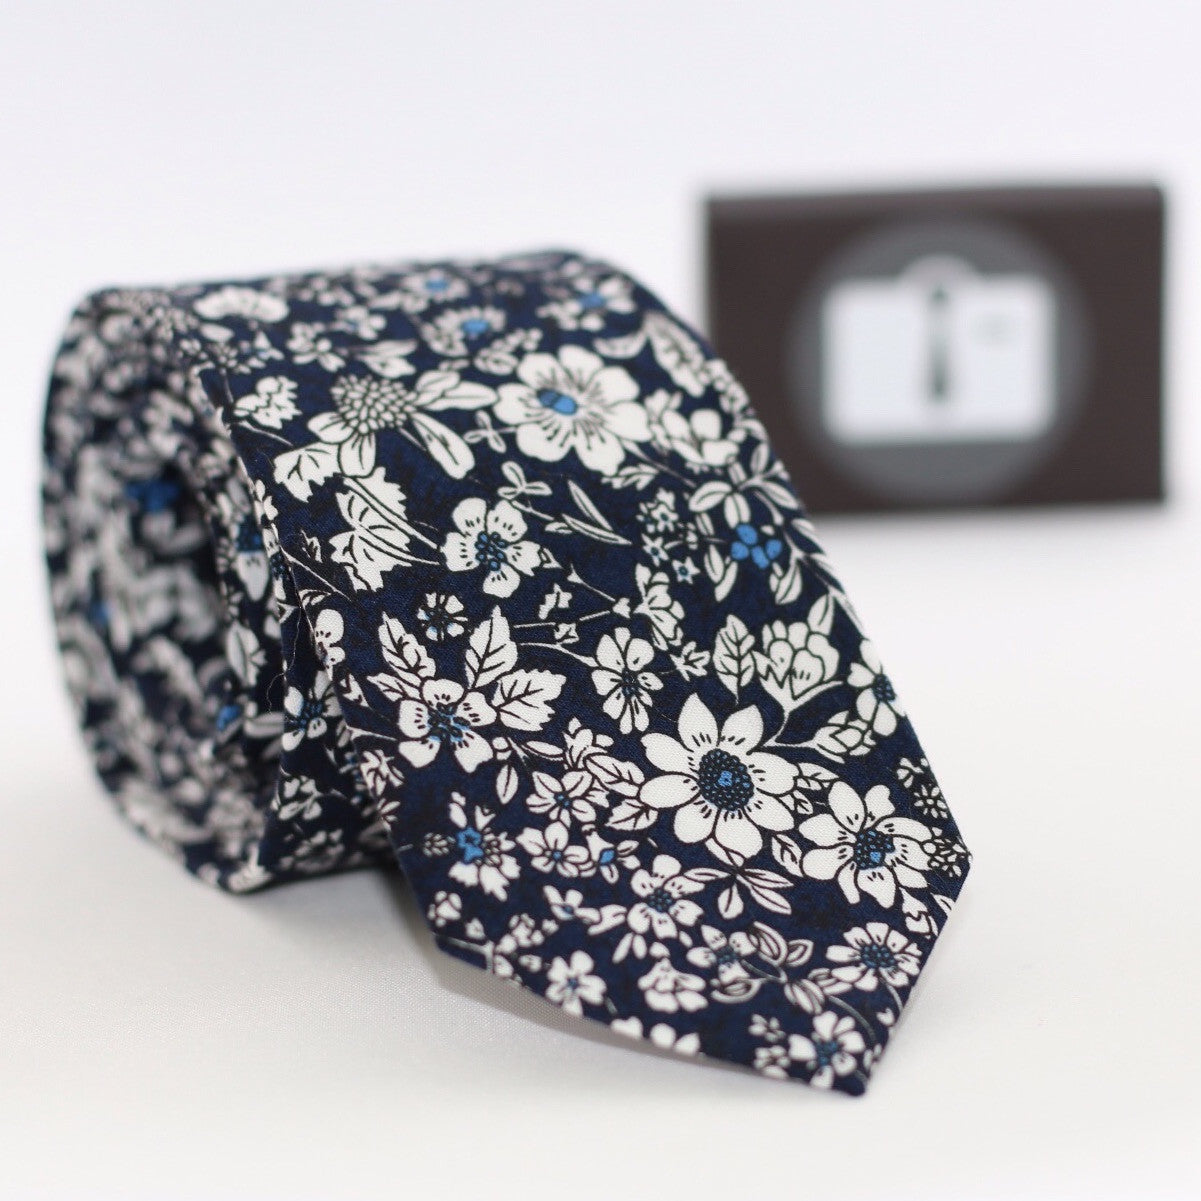 Navy Floral Tie With White Botanical Design